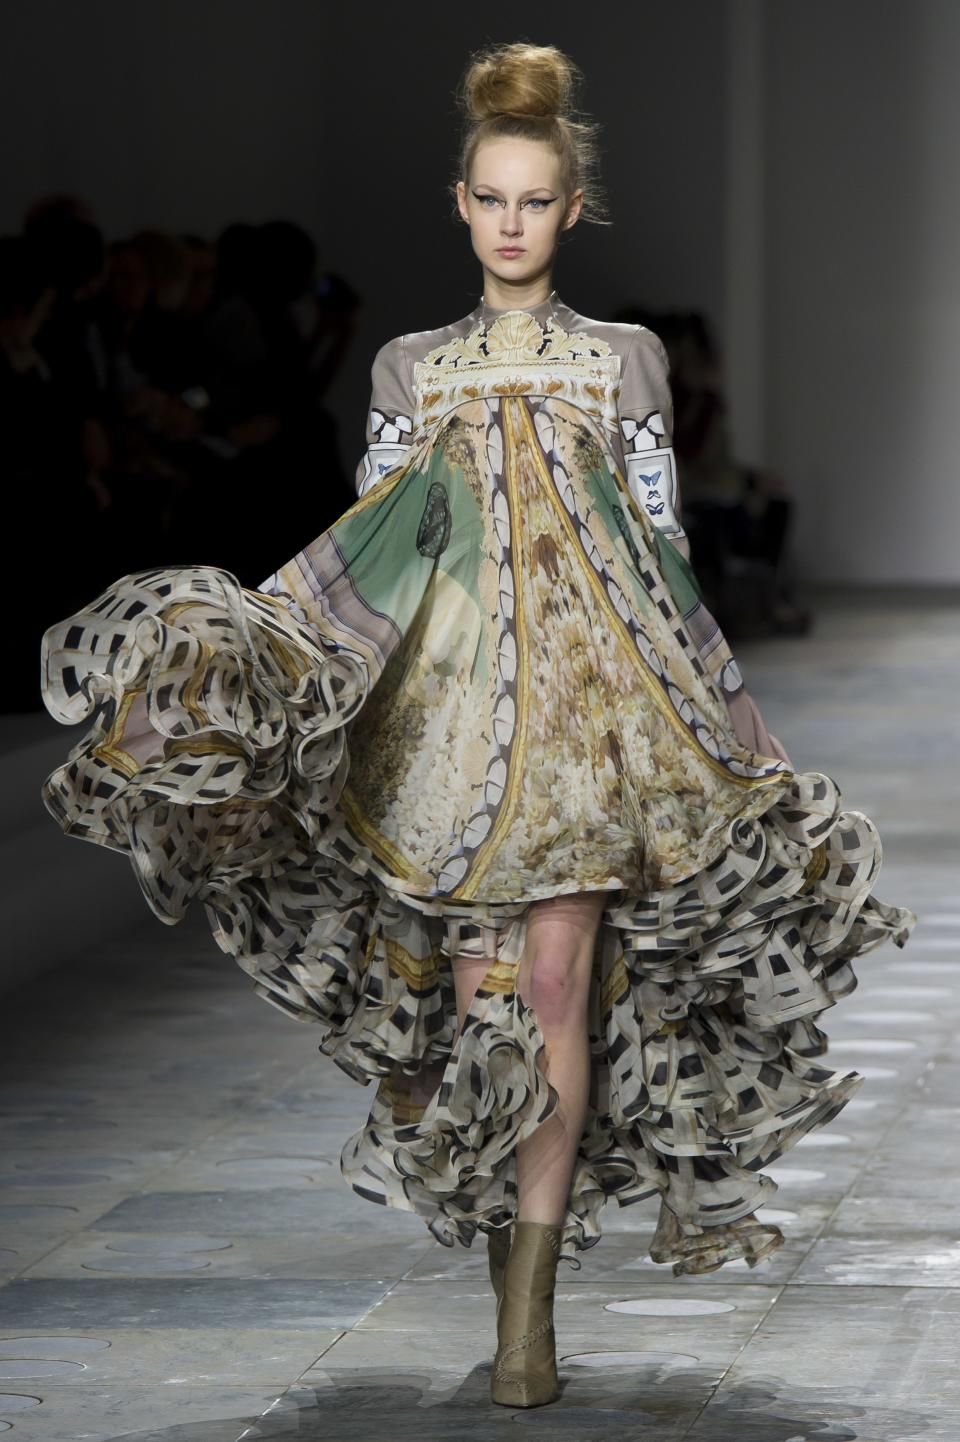 A model displays a creation by designer Mary Katrantzou during a fashion show at London Fashion Week, Tuesday, Feb. 21, 2012. (AP Photo/Jonathan Short)